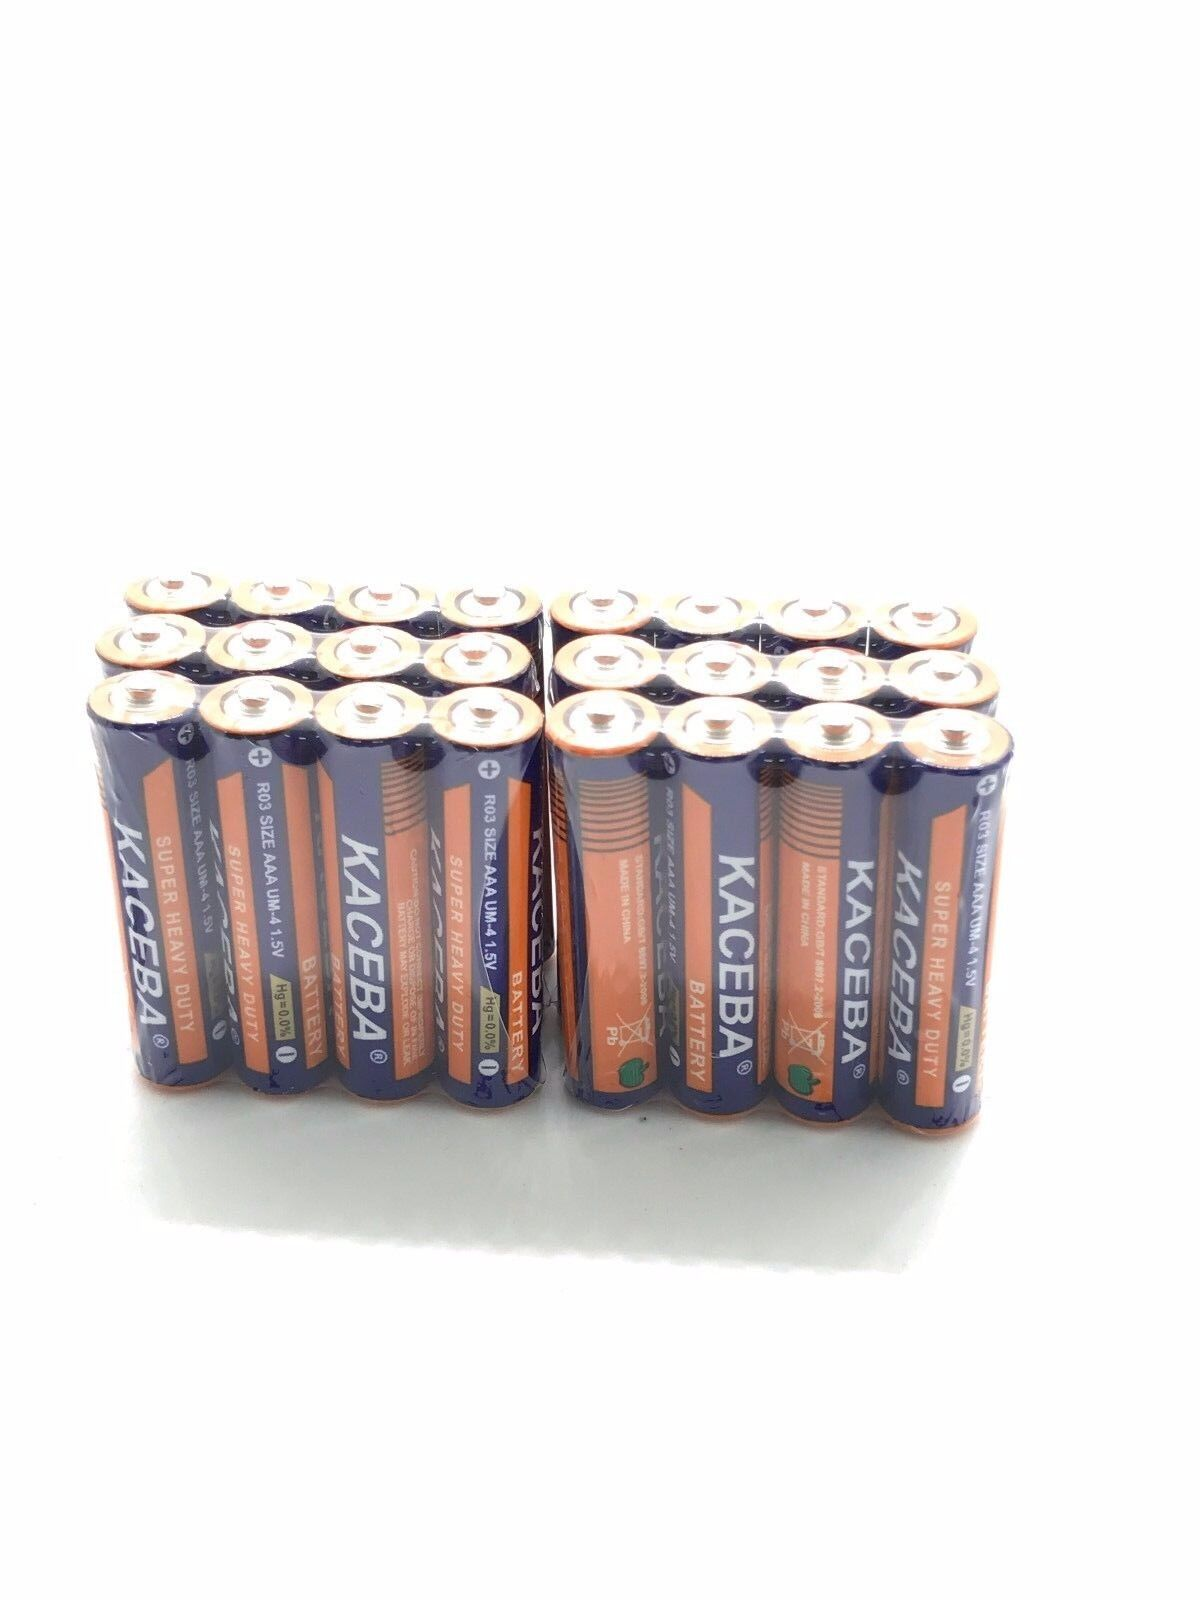 24 Pack AAA Batteries Extra Heavy Duty 1.5v. Wholesale Lot N